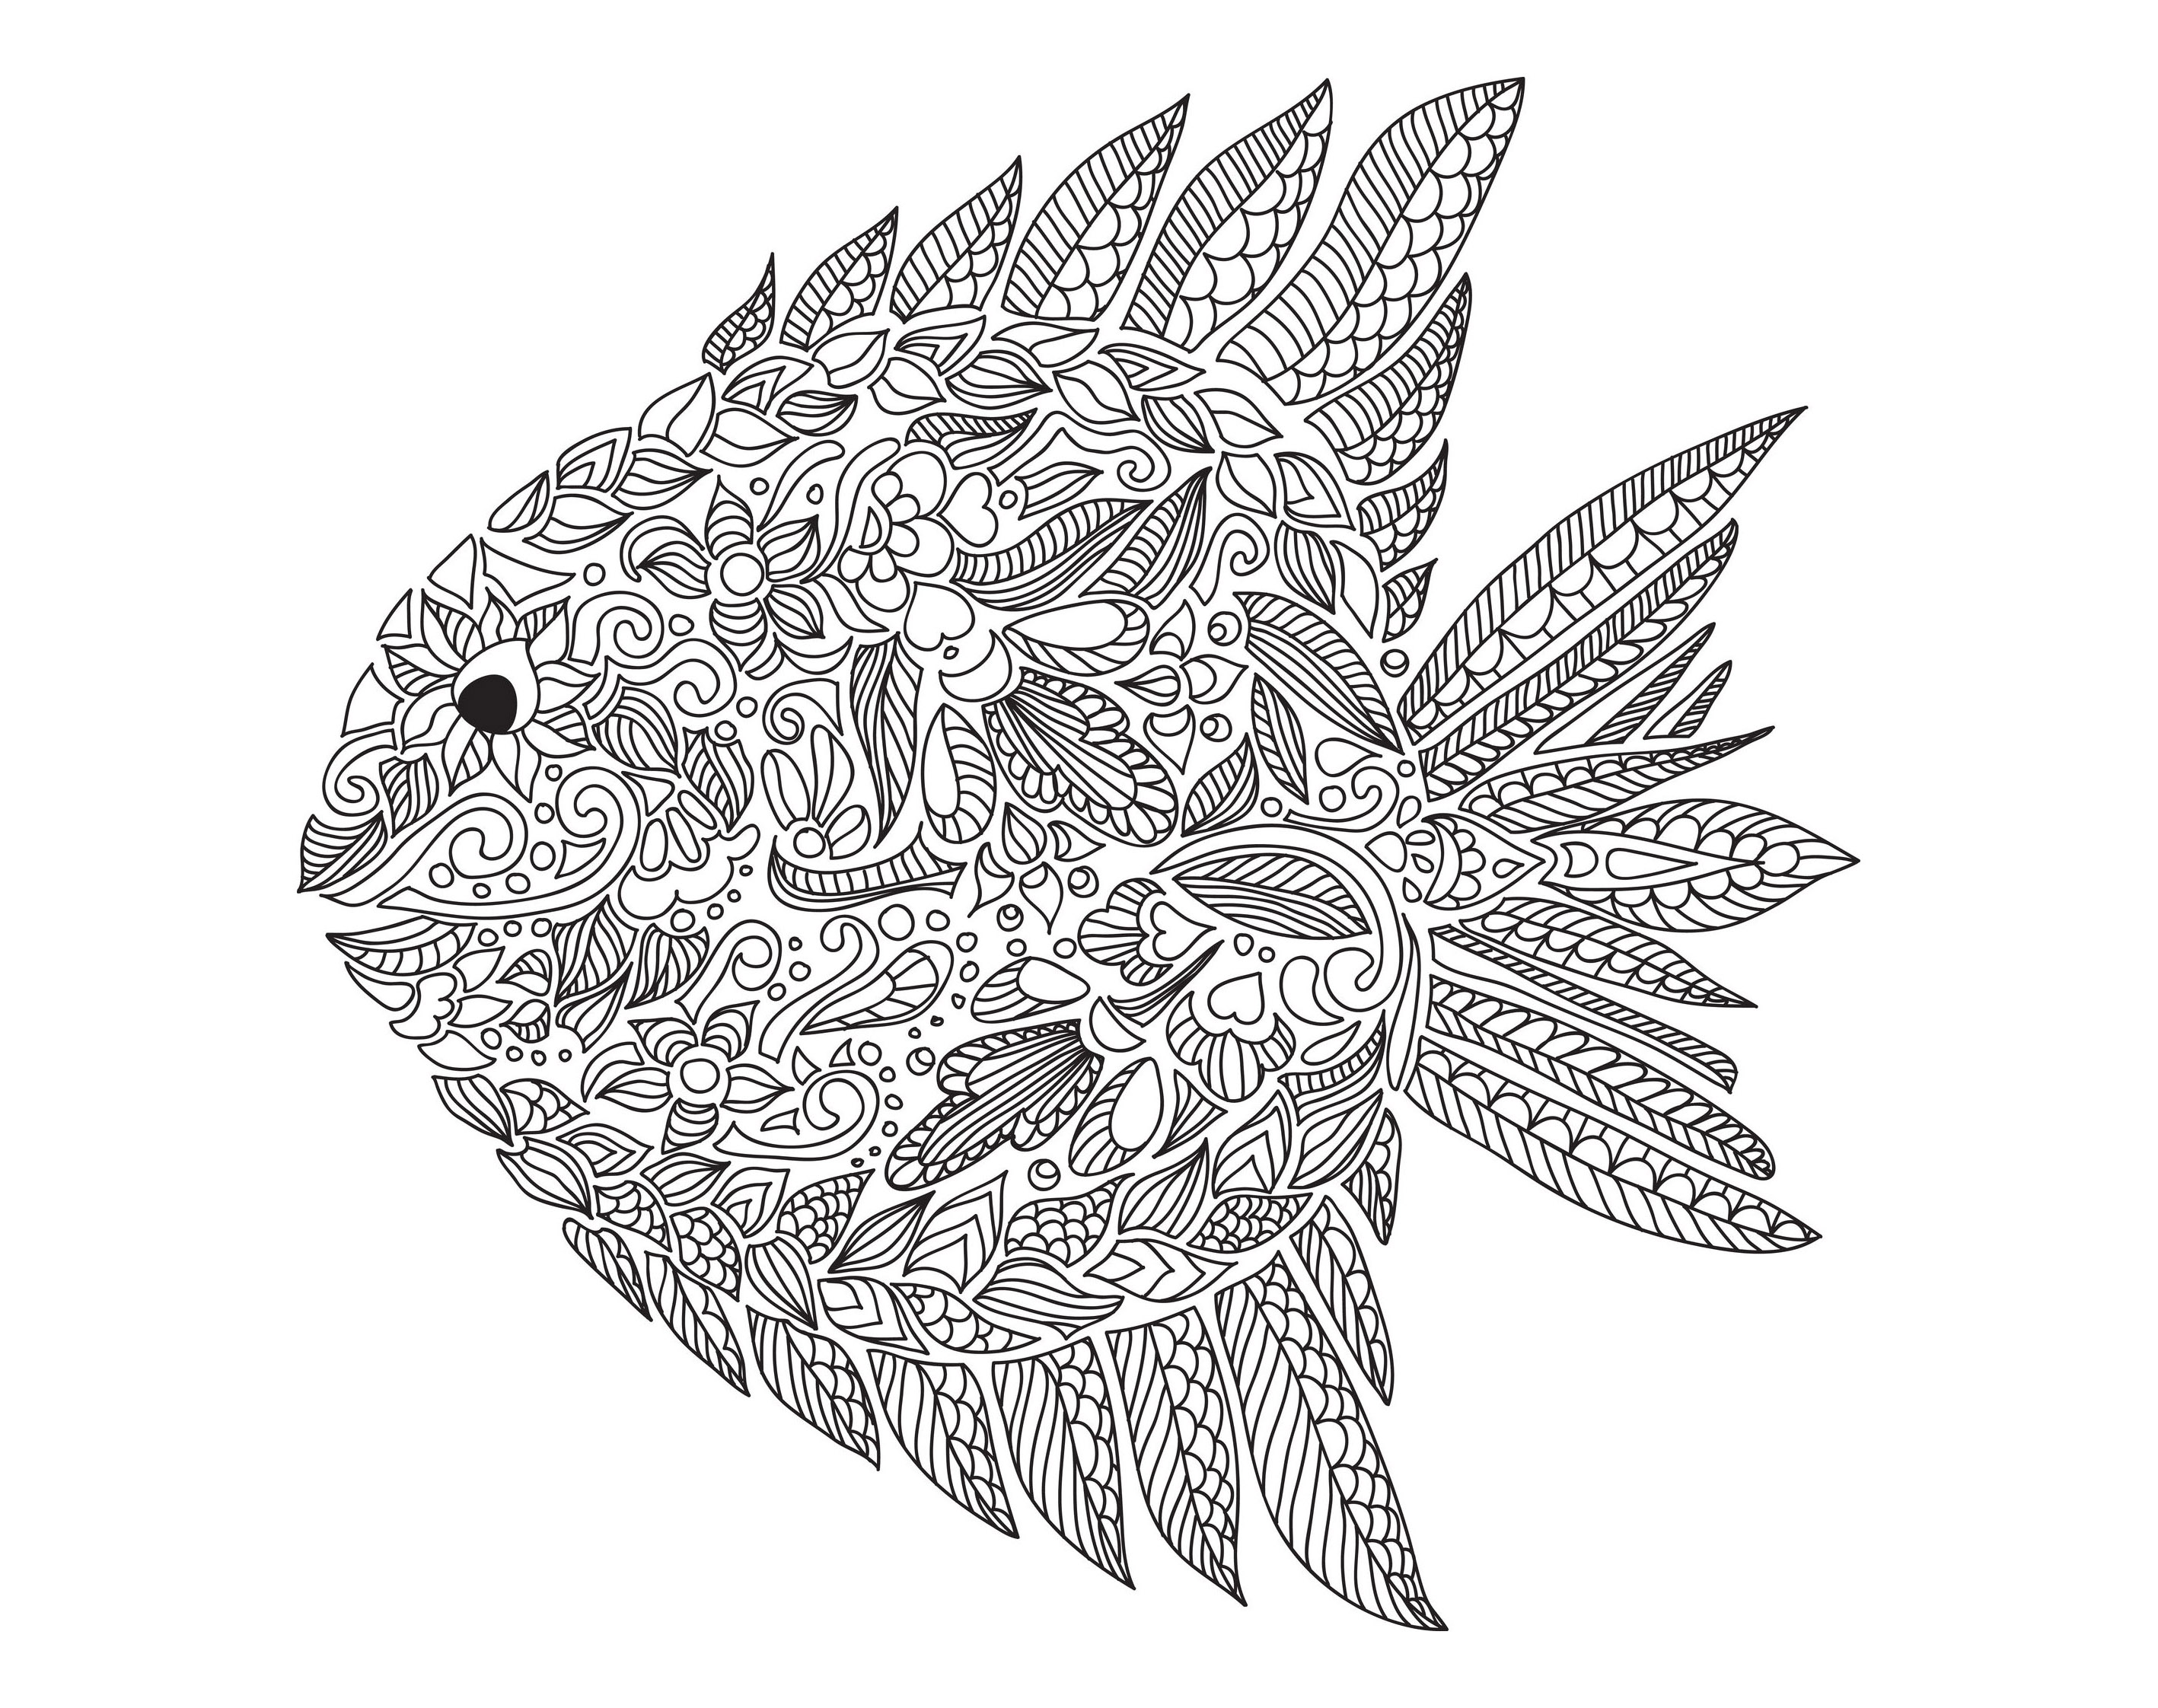 complex zentangle fish to color from the gallery zentangle artist artnataliia - Zentangle Coloring Pages